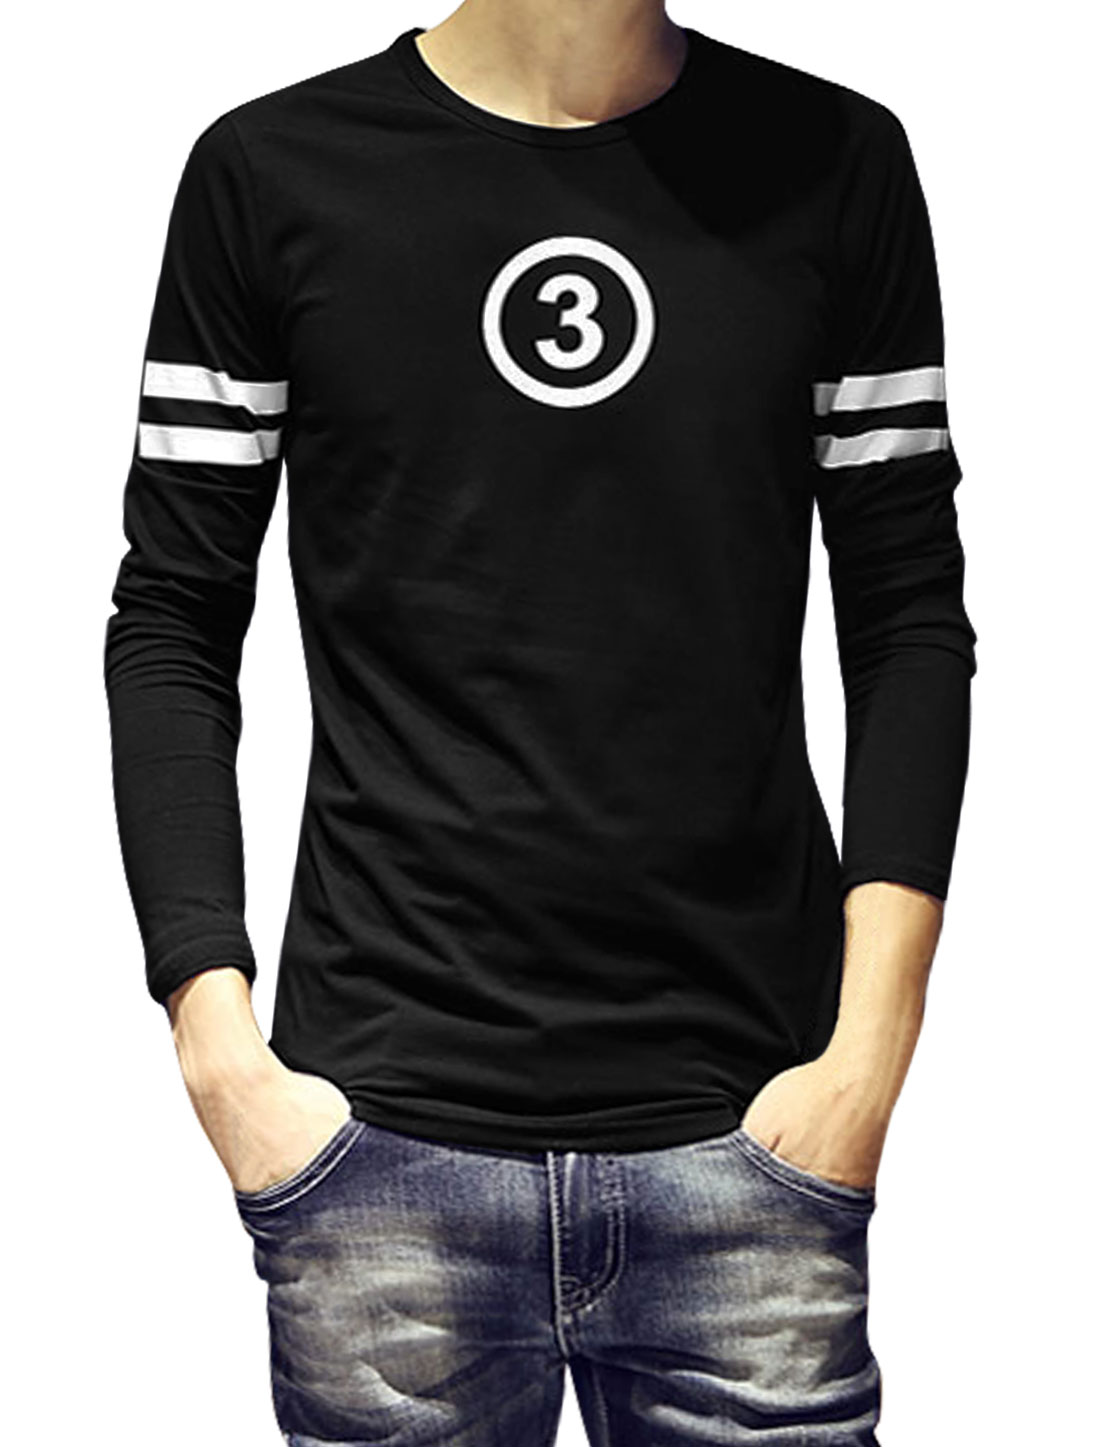 Men Long Sleeves Number Stripes Slim Fit T-Shirt Black S